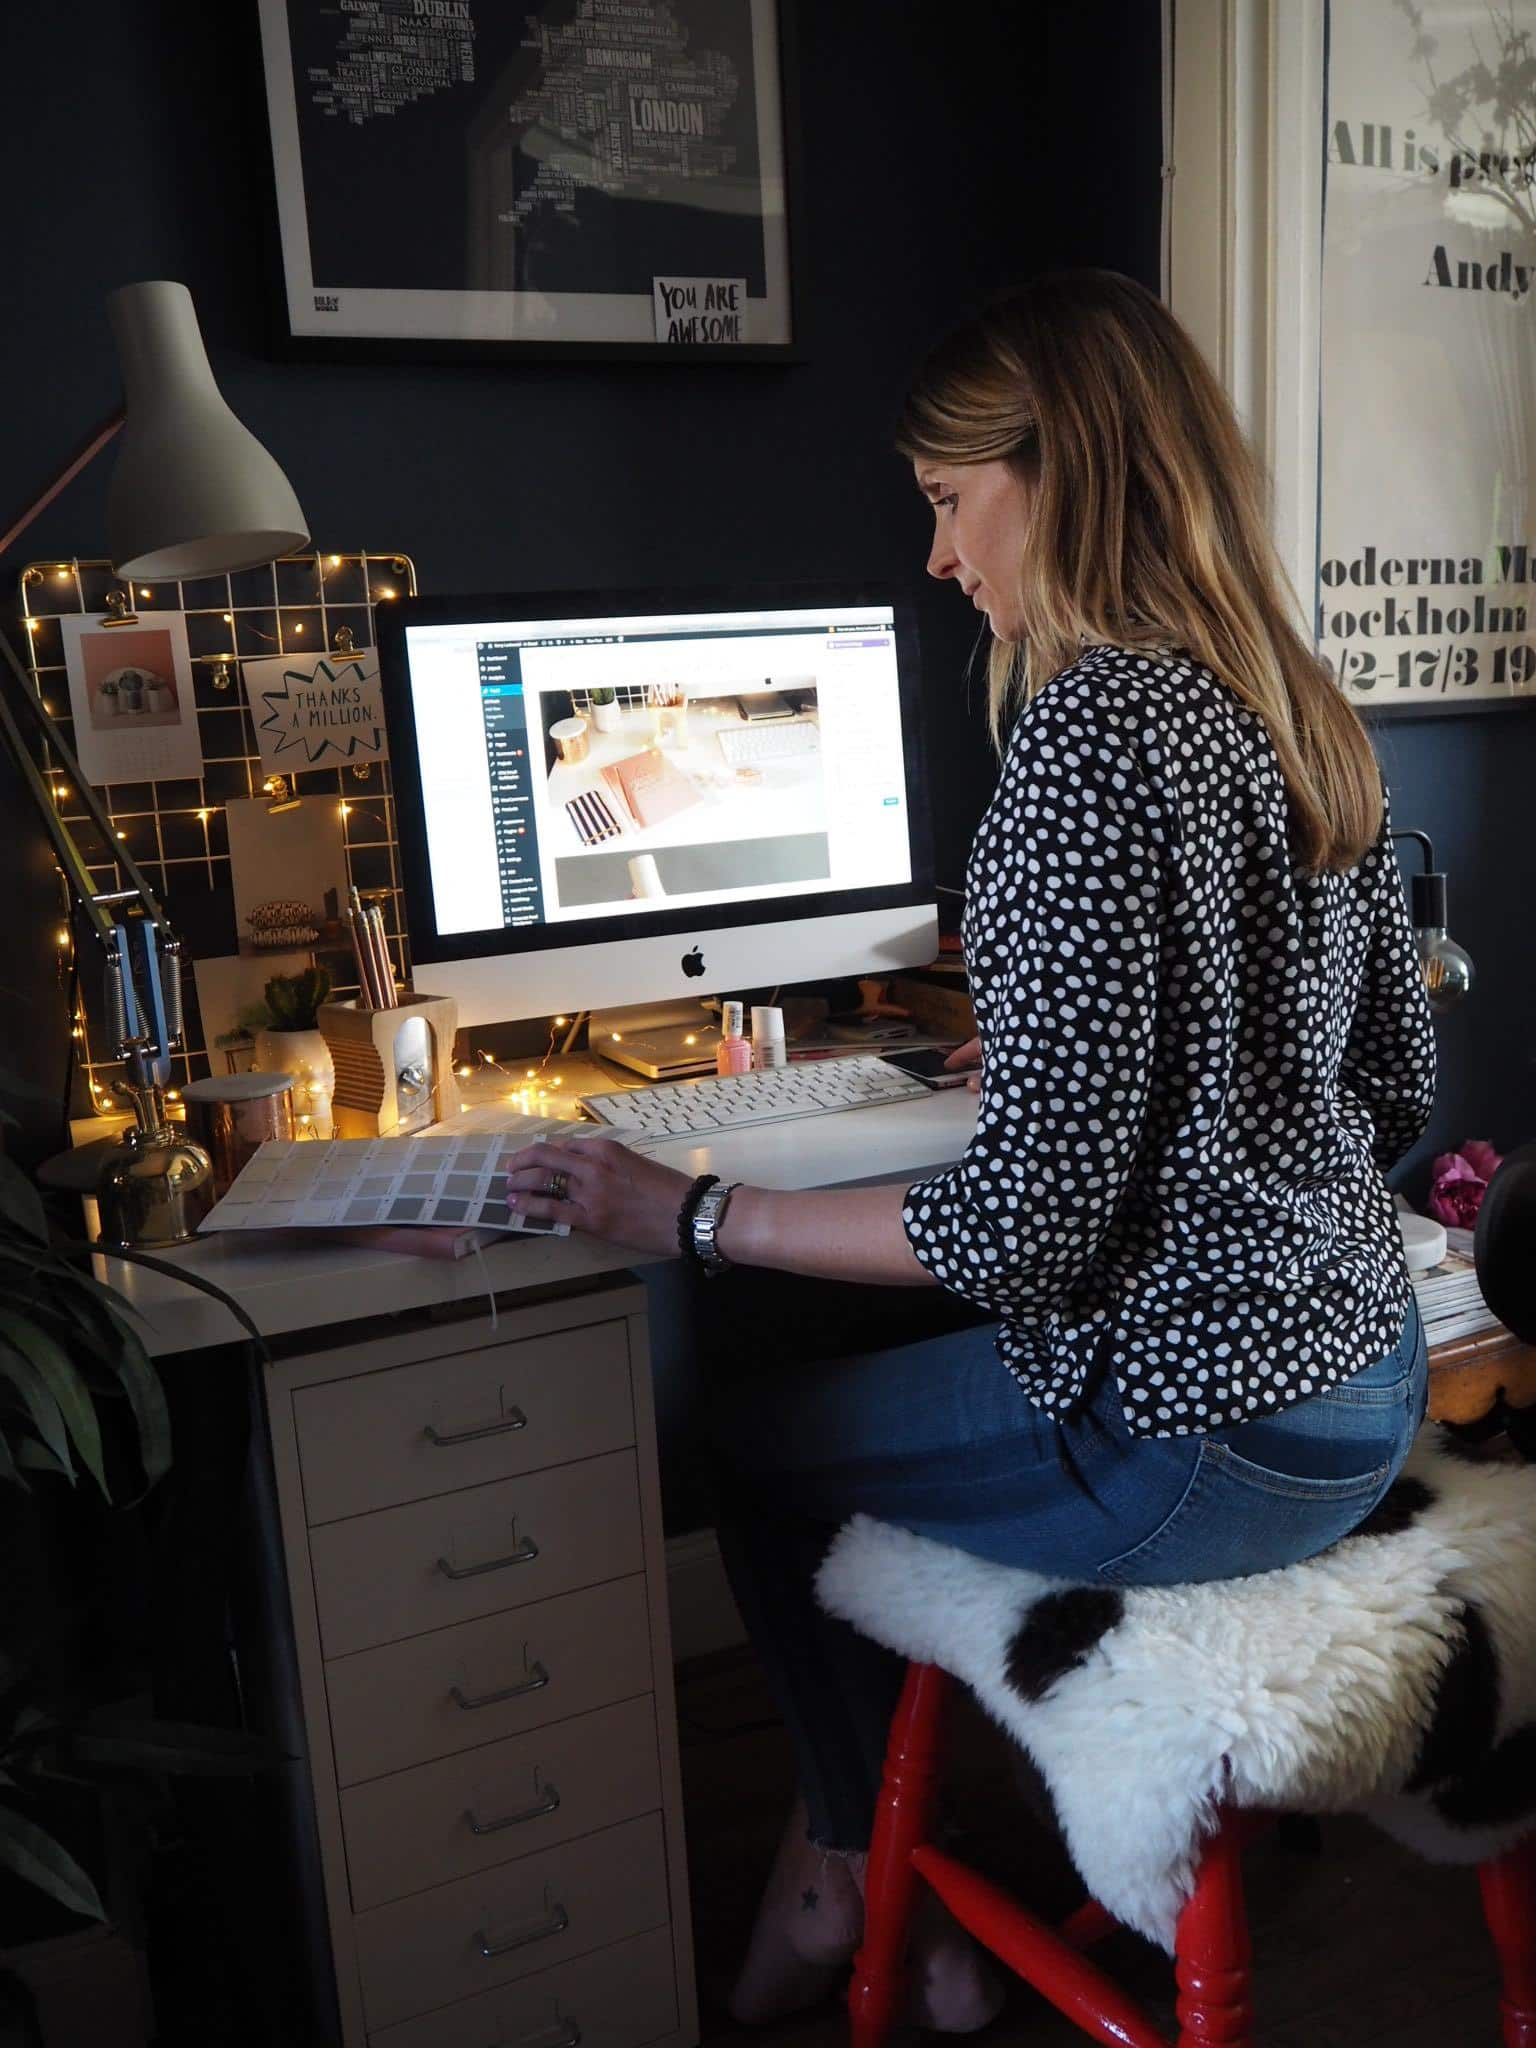 Kerry Lockwood - In detail, home office blog